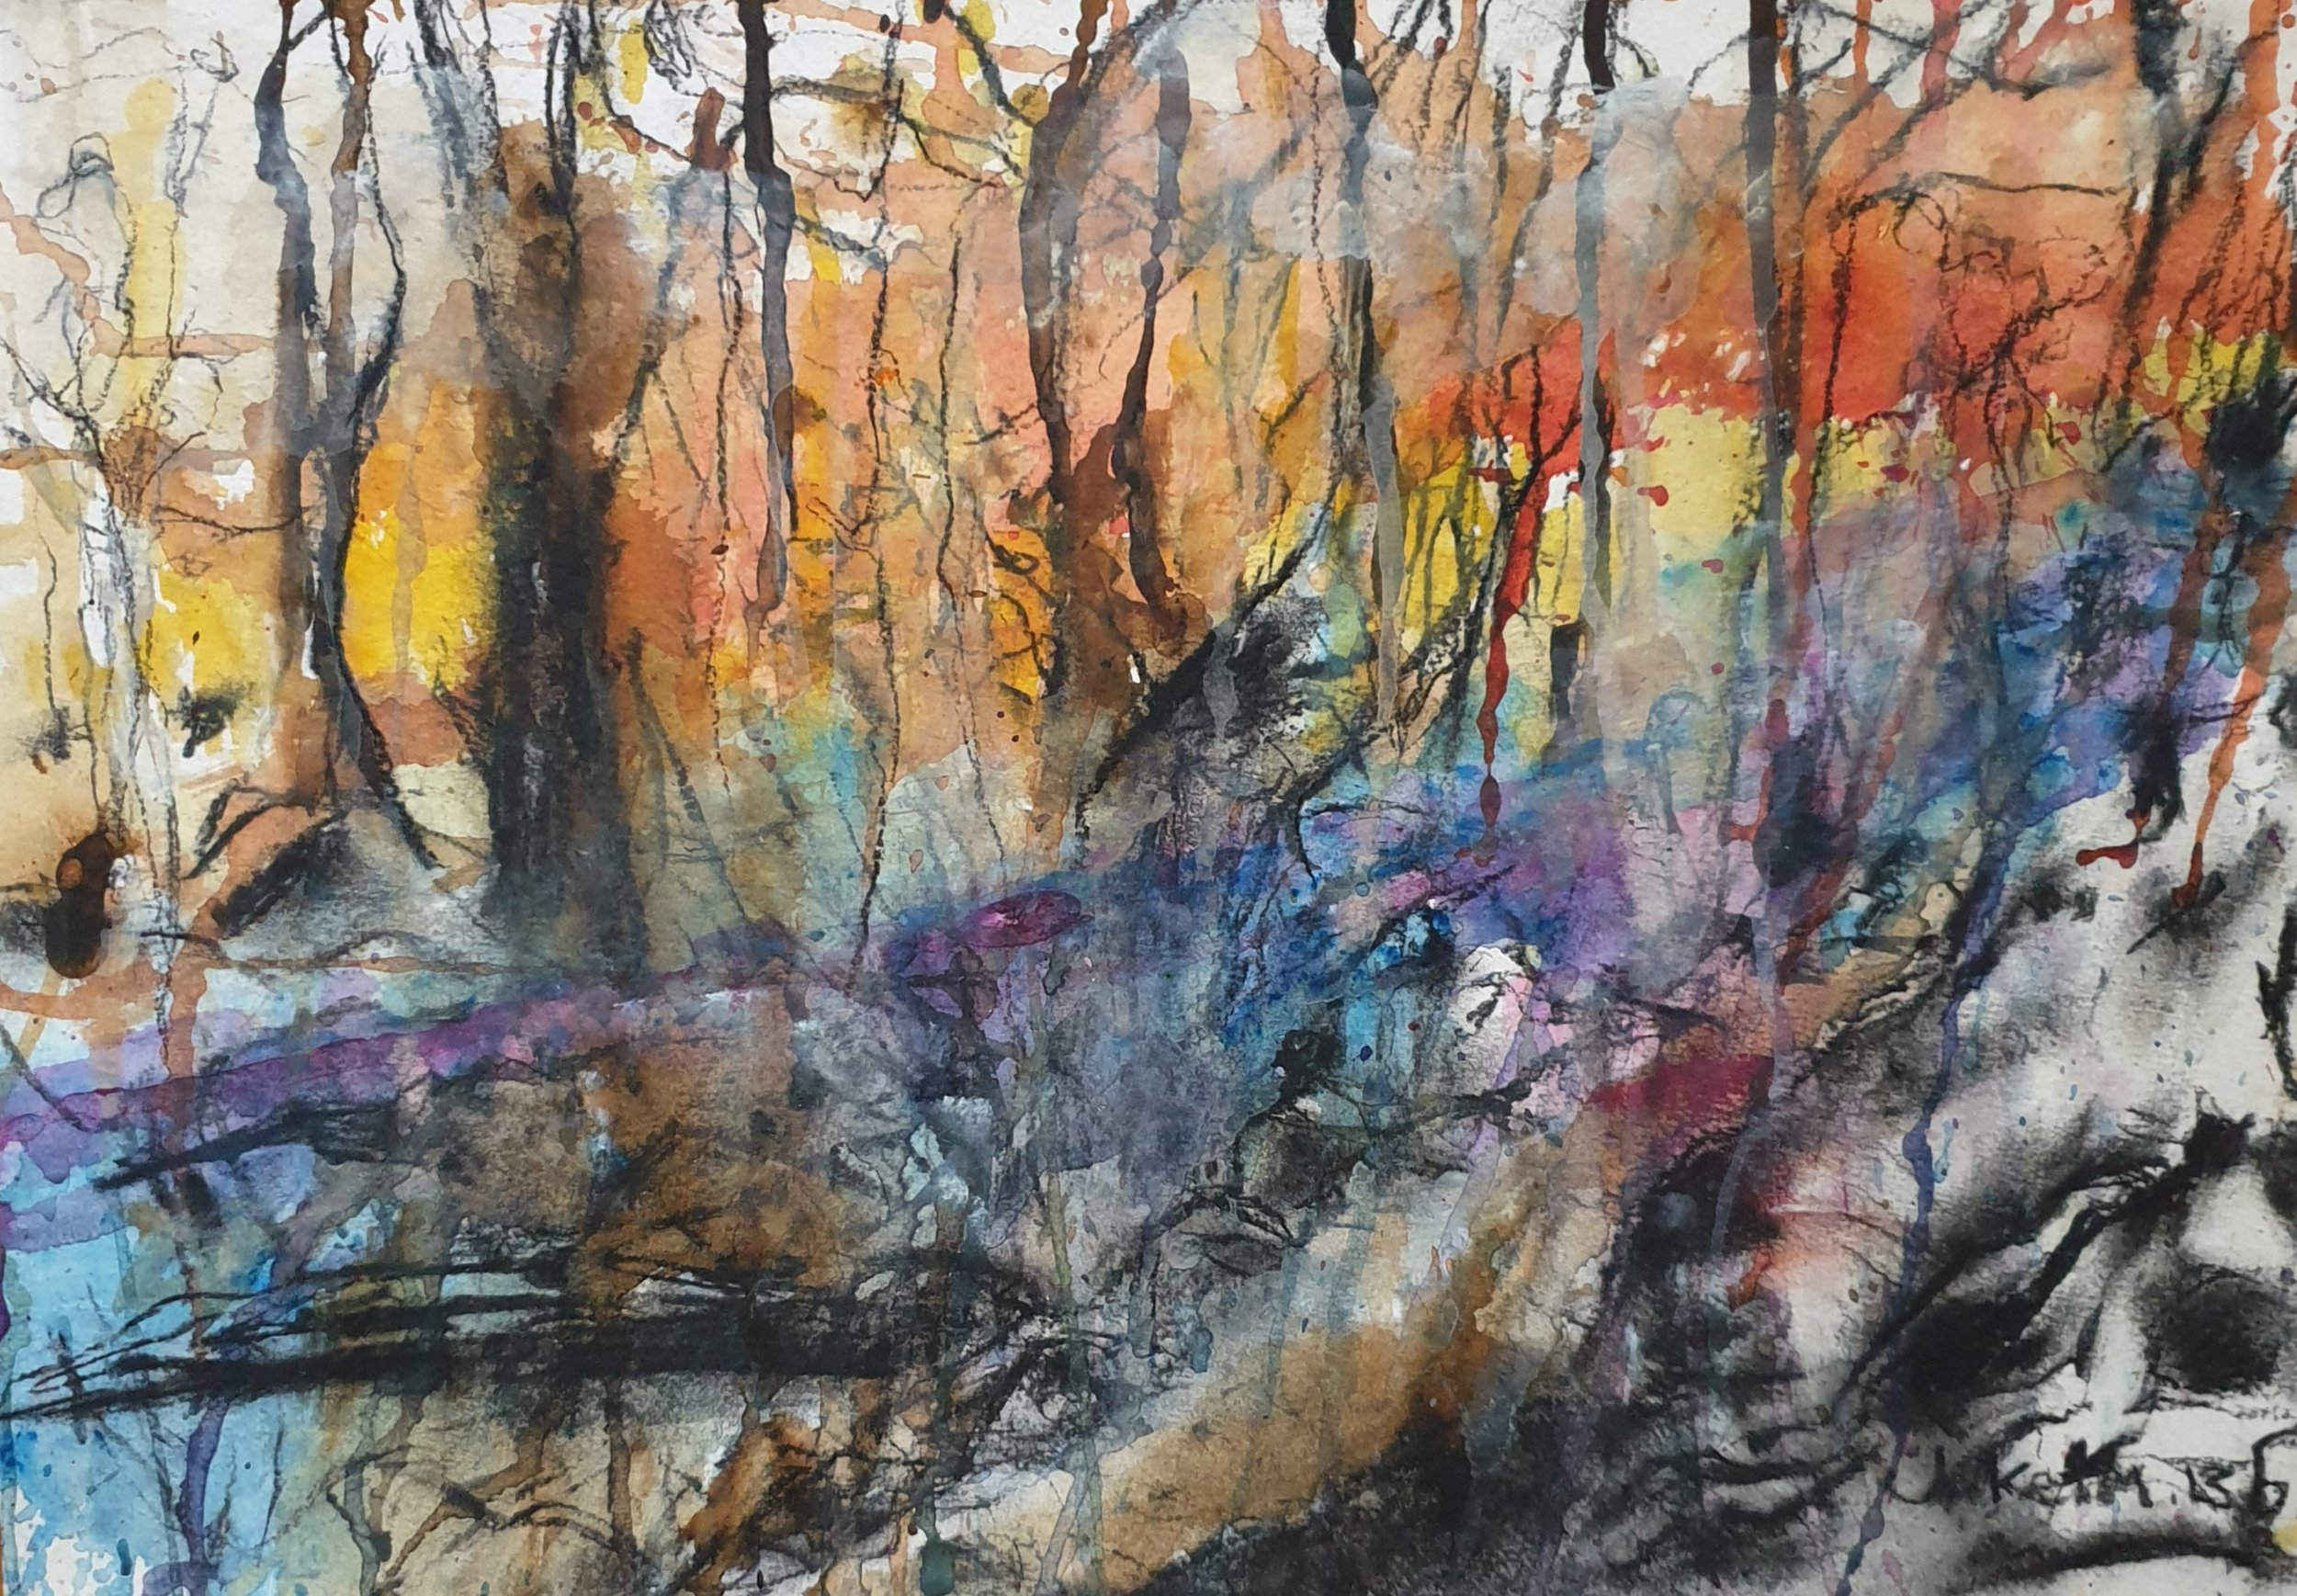 'Fire Walk With Me' Mixed Media 29.7cm x 42cm